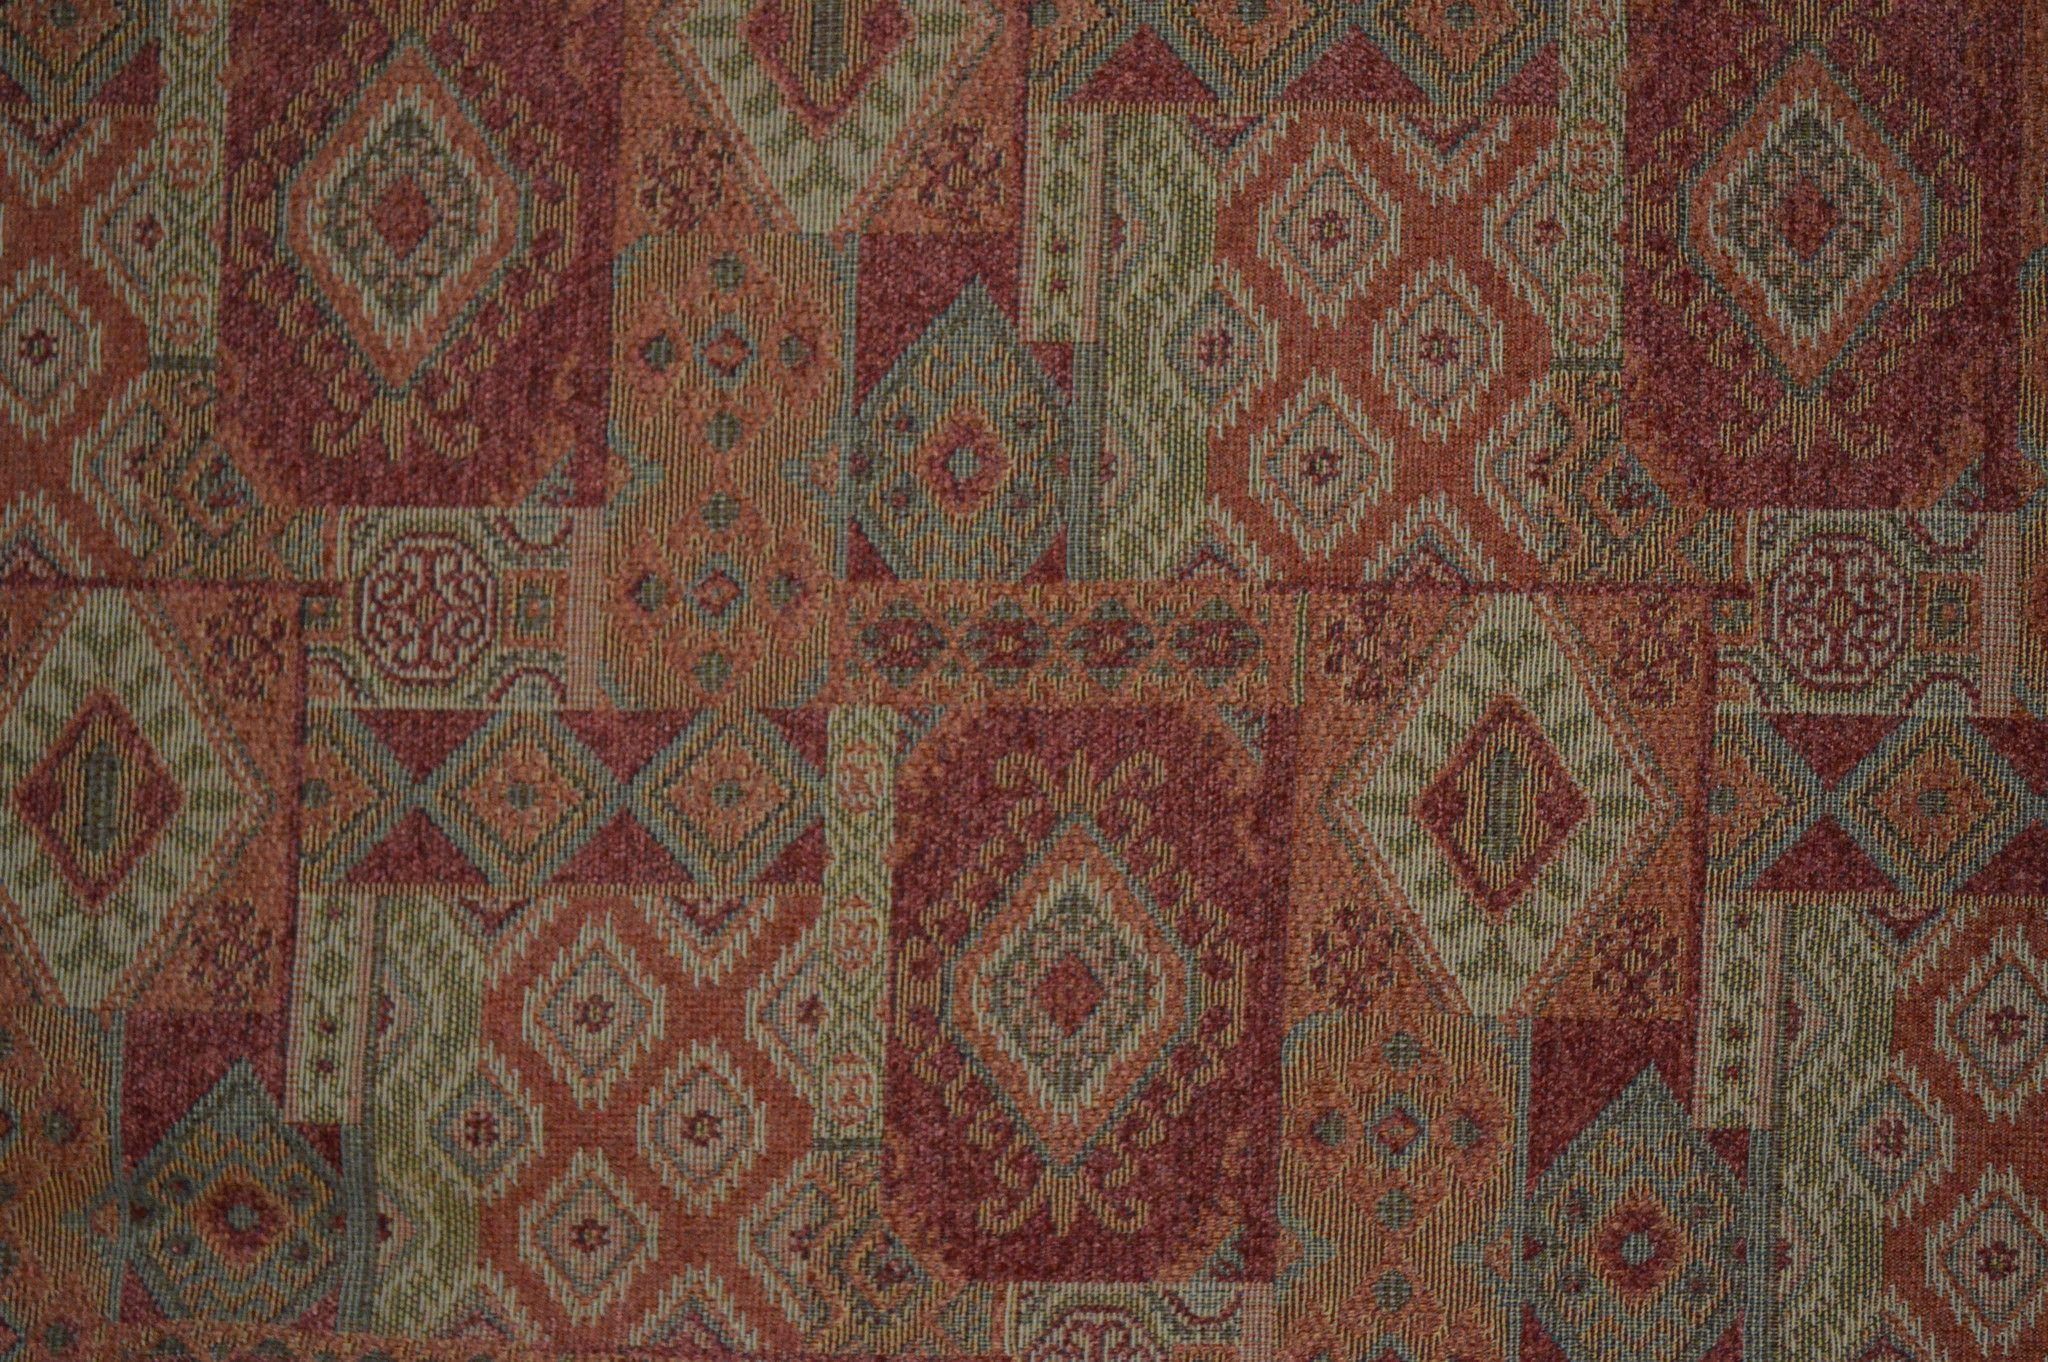 Jacquard Chenille Upholstery Fabric Sold By The Yard Tucson